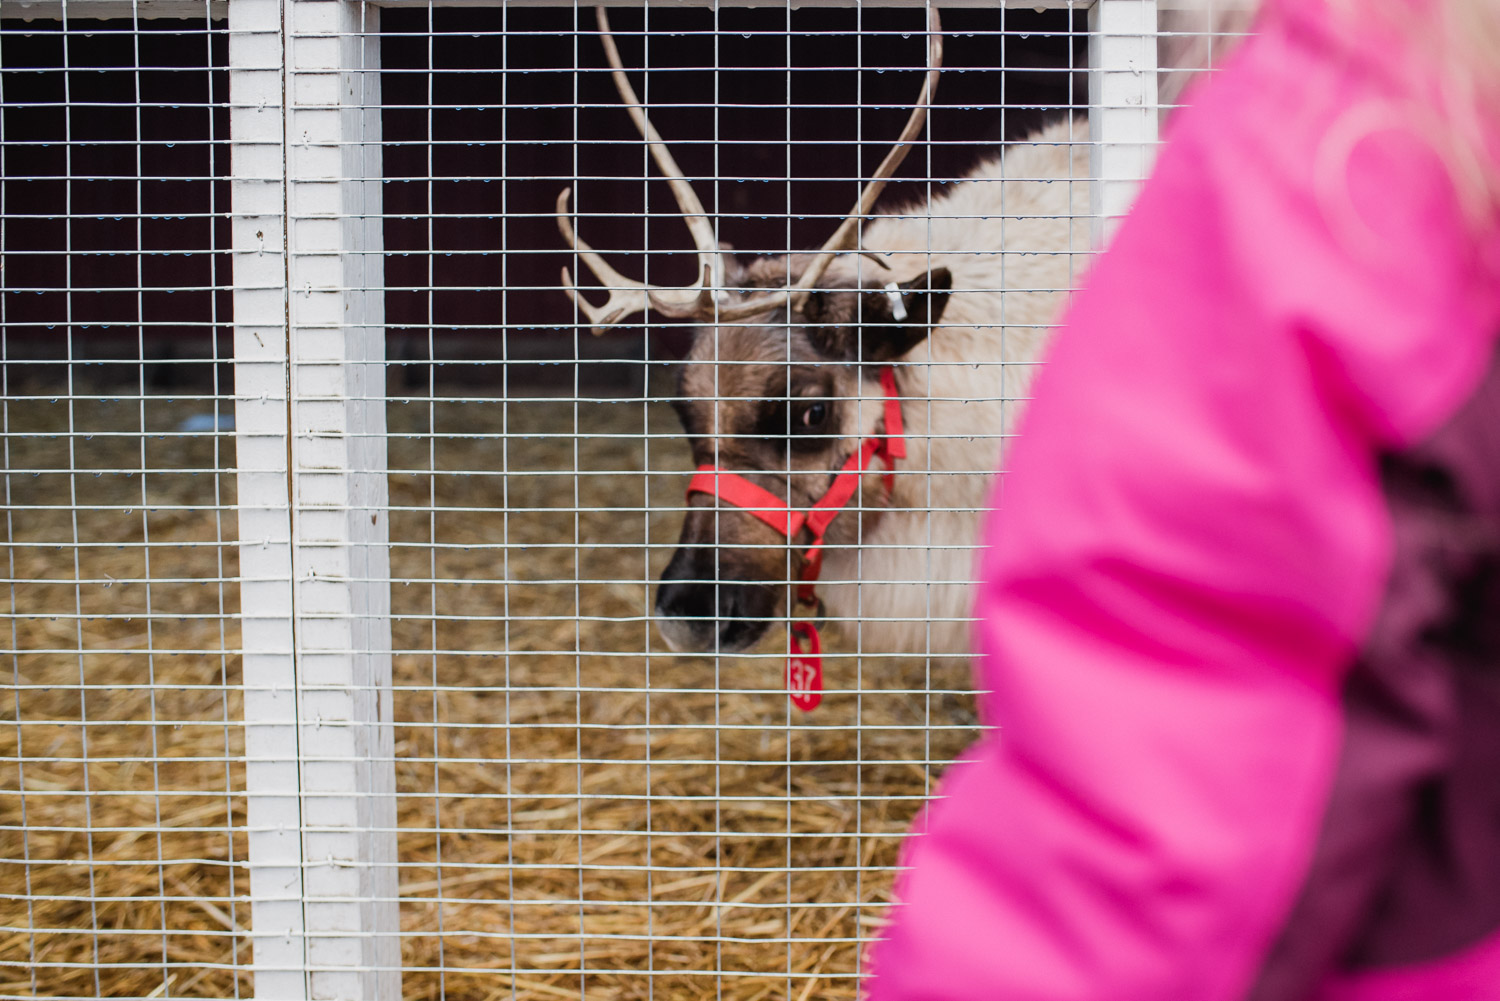 A reindeer peeks out from his pen at Hicks Nursery.